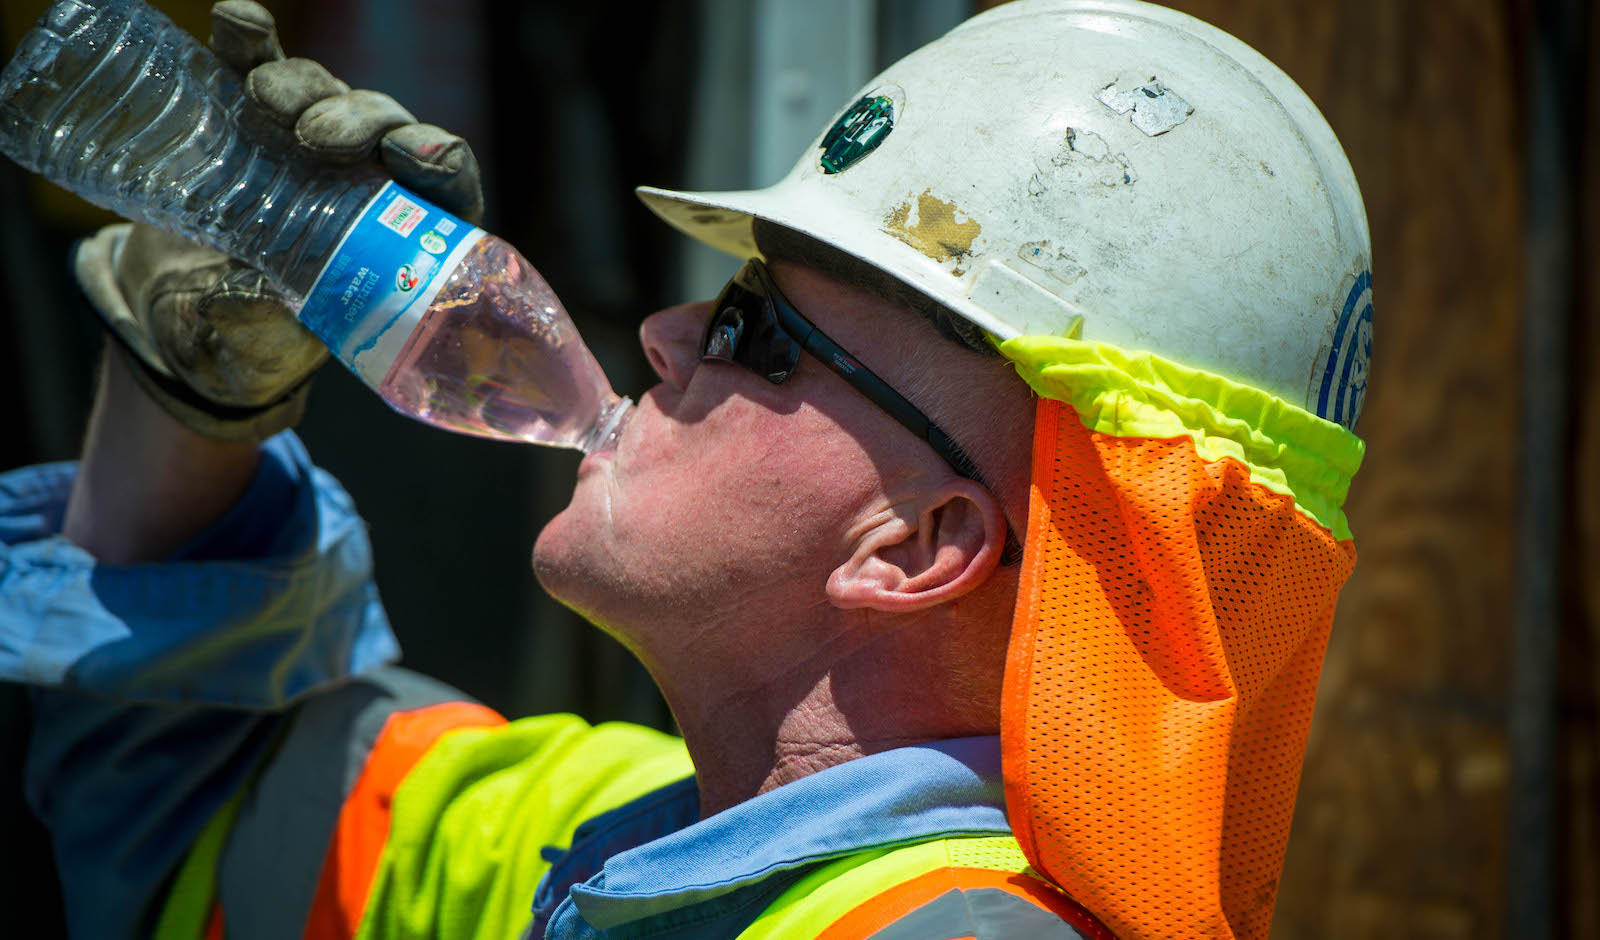 Construction worker takes a drink of water on a hot day